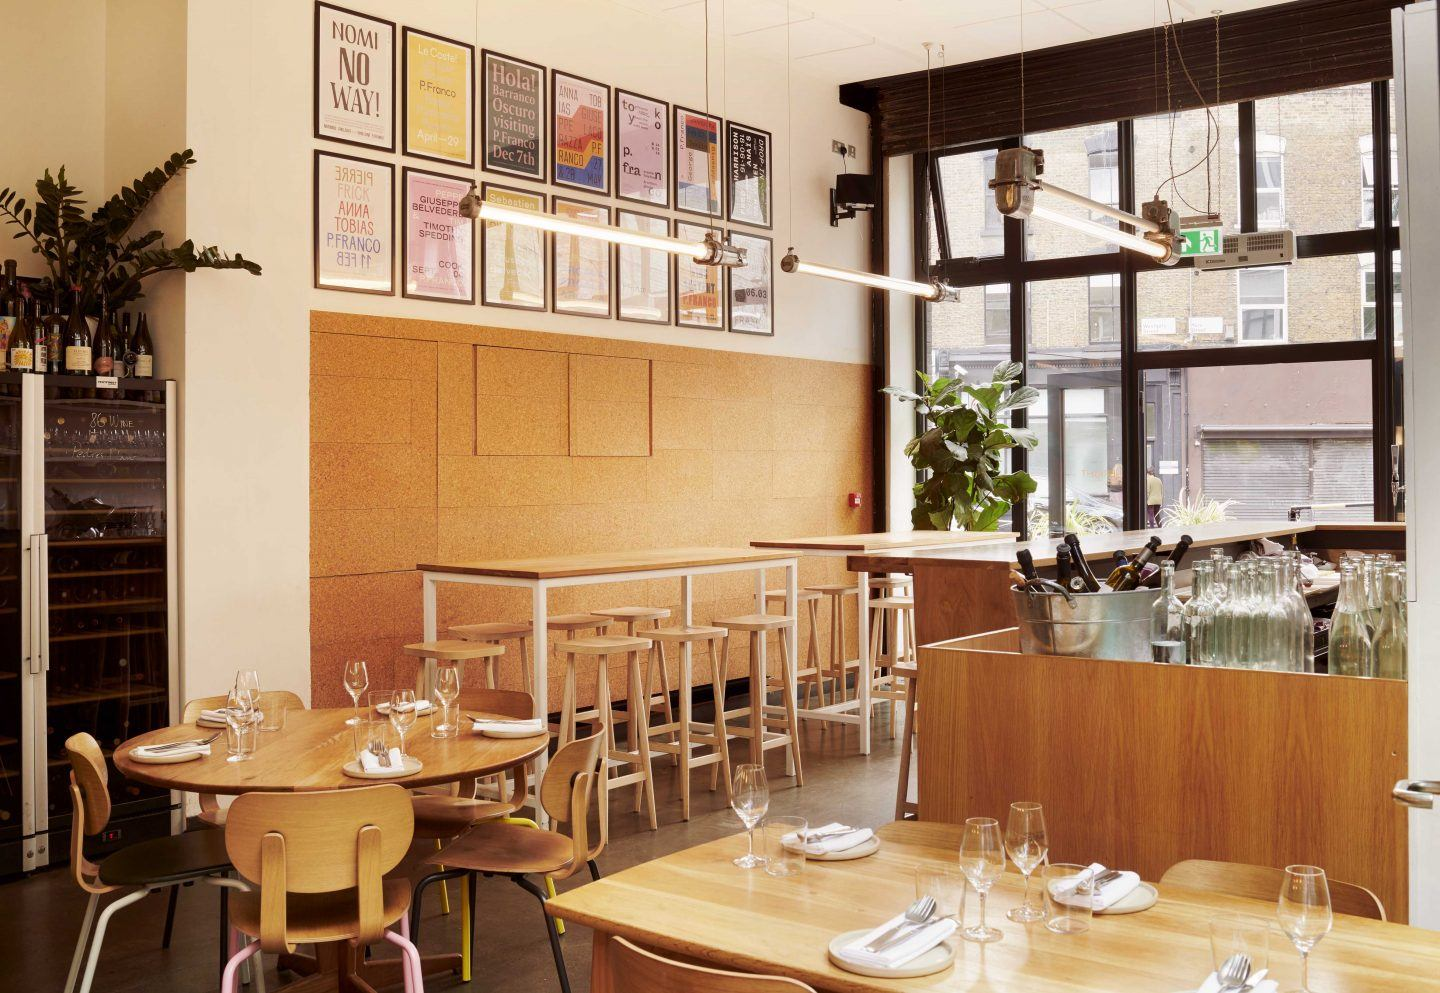 IGNANT-Travel-Bright-Restaurant-London-013